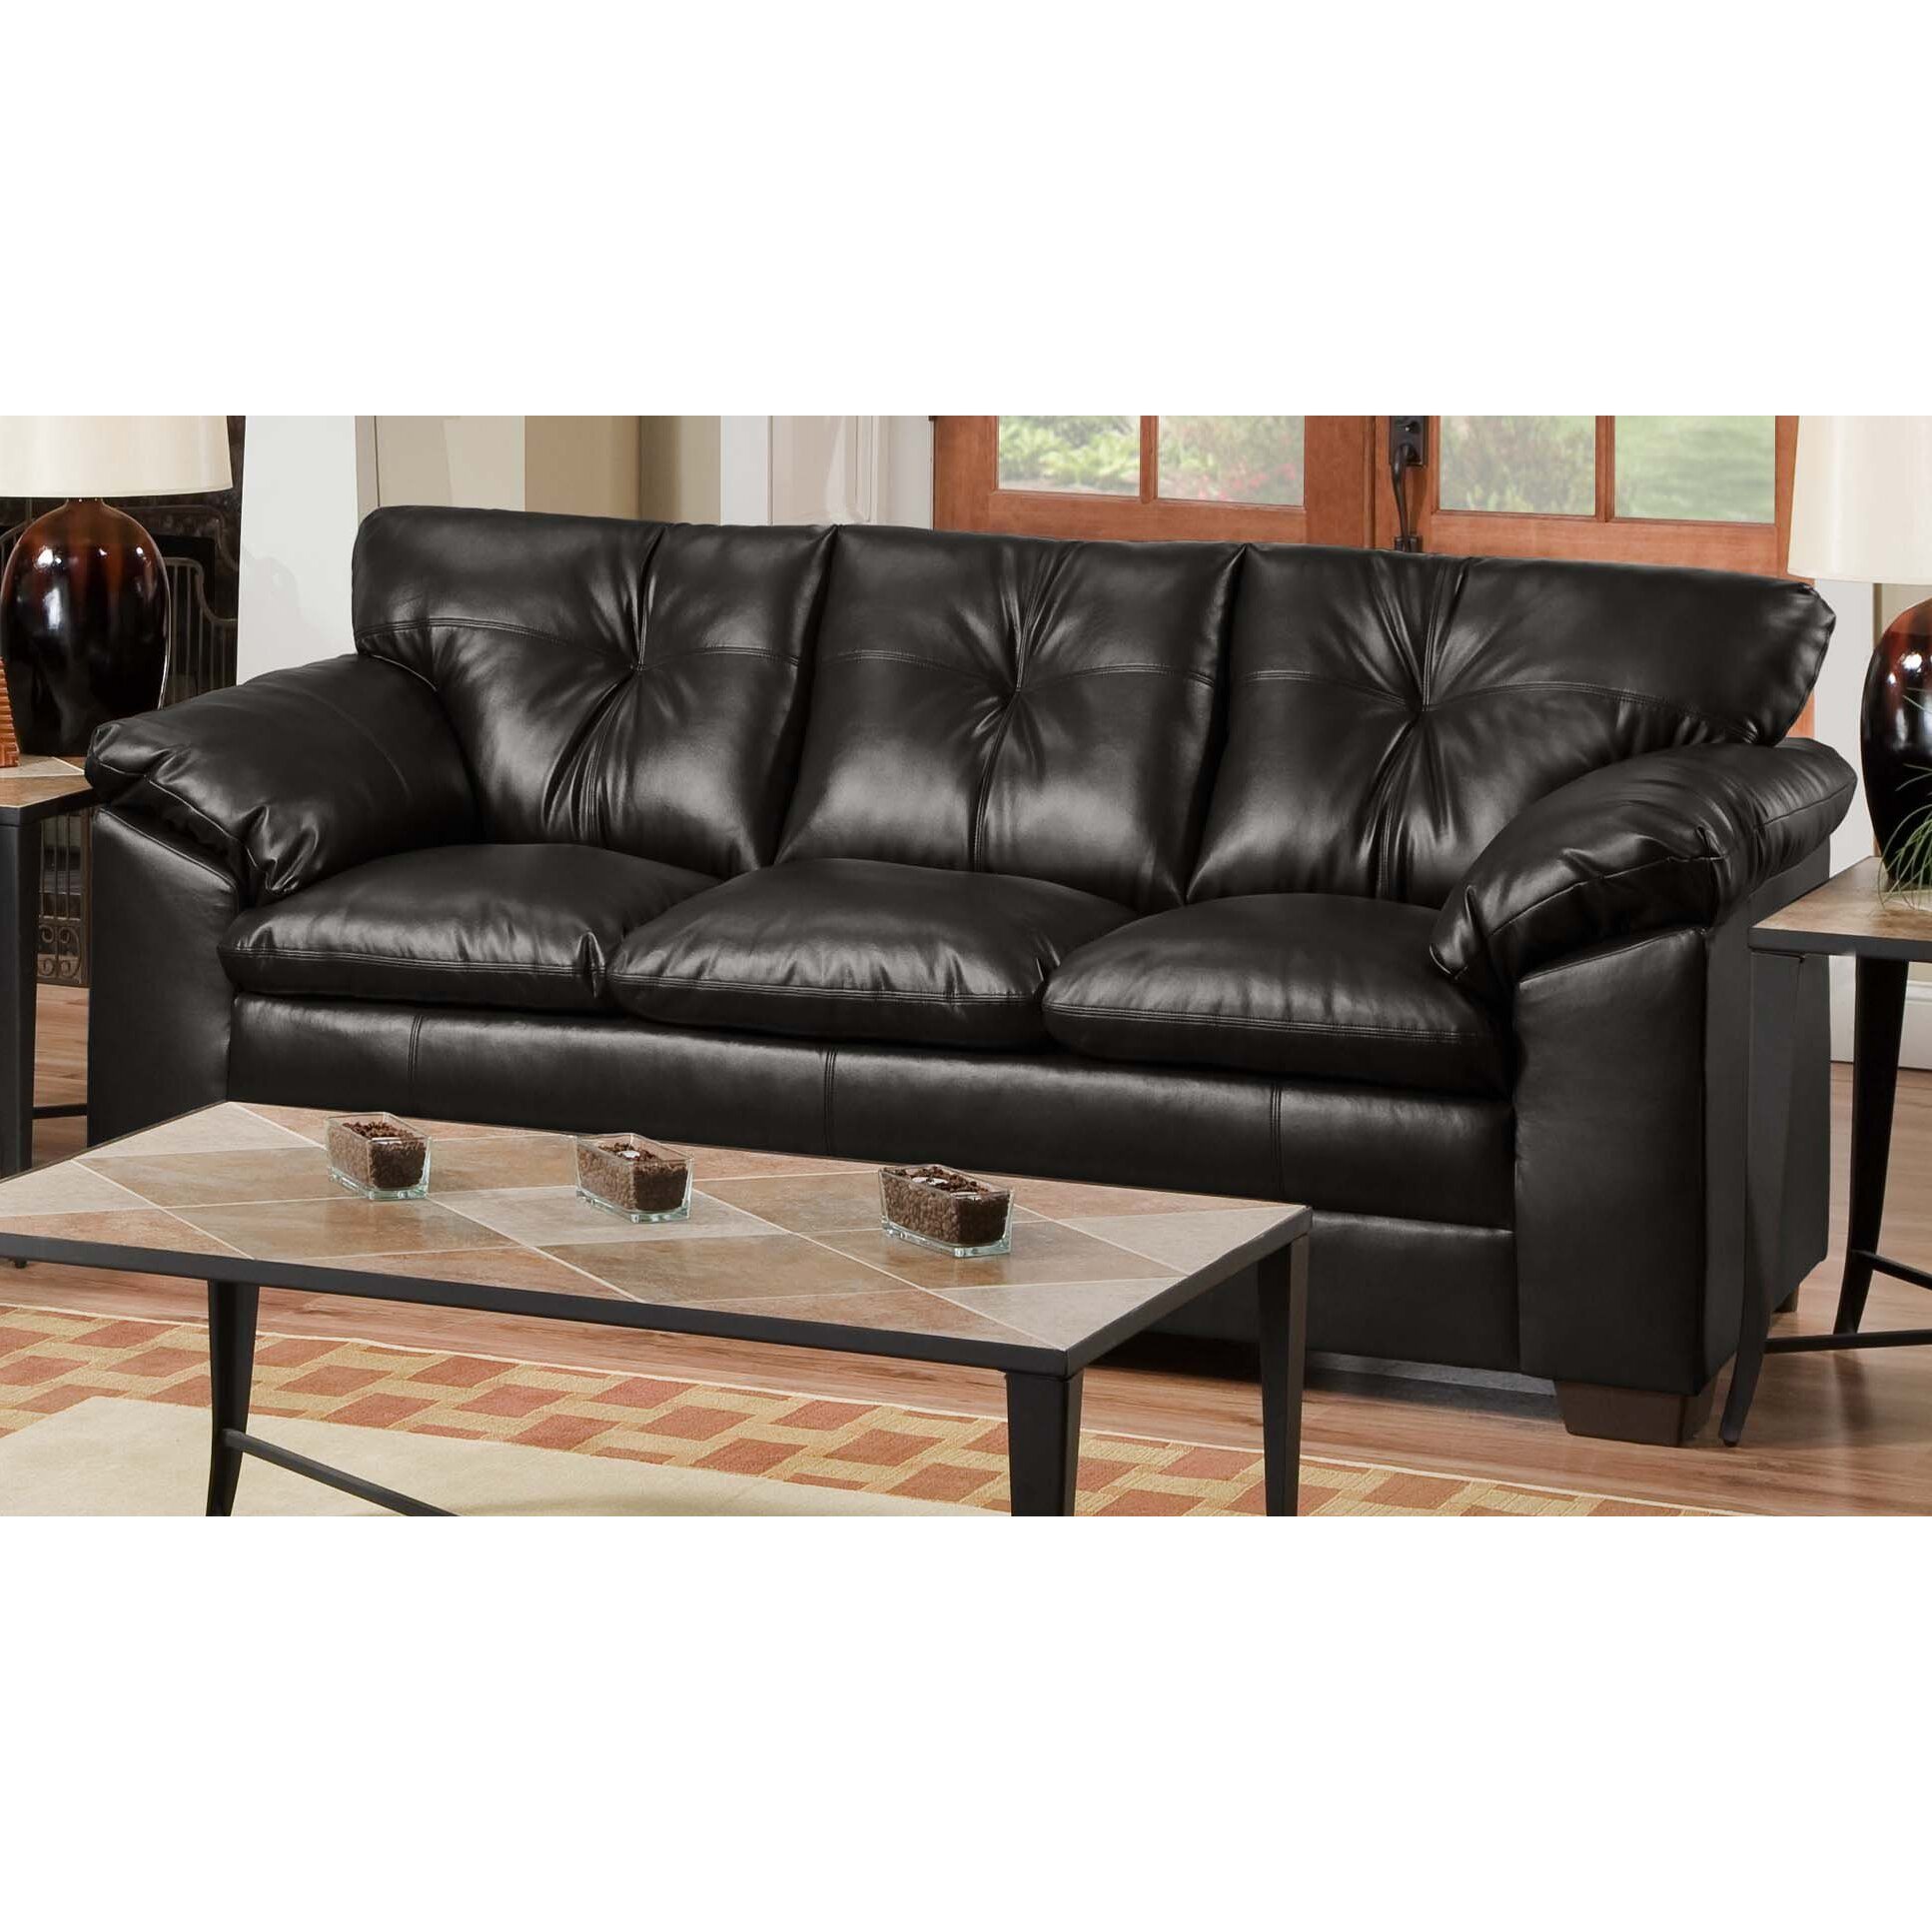 Simmons upholstery duxbury living room collection for Simmons living room furniture